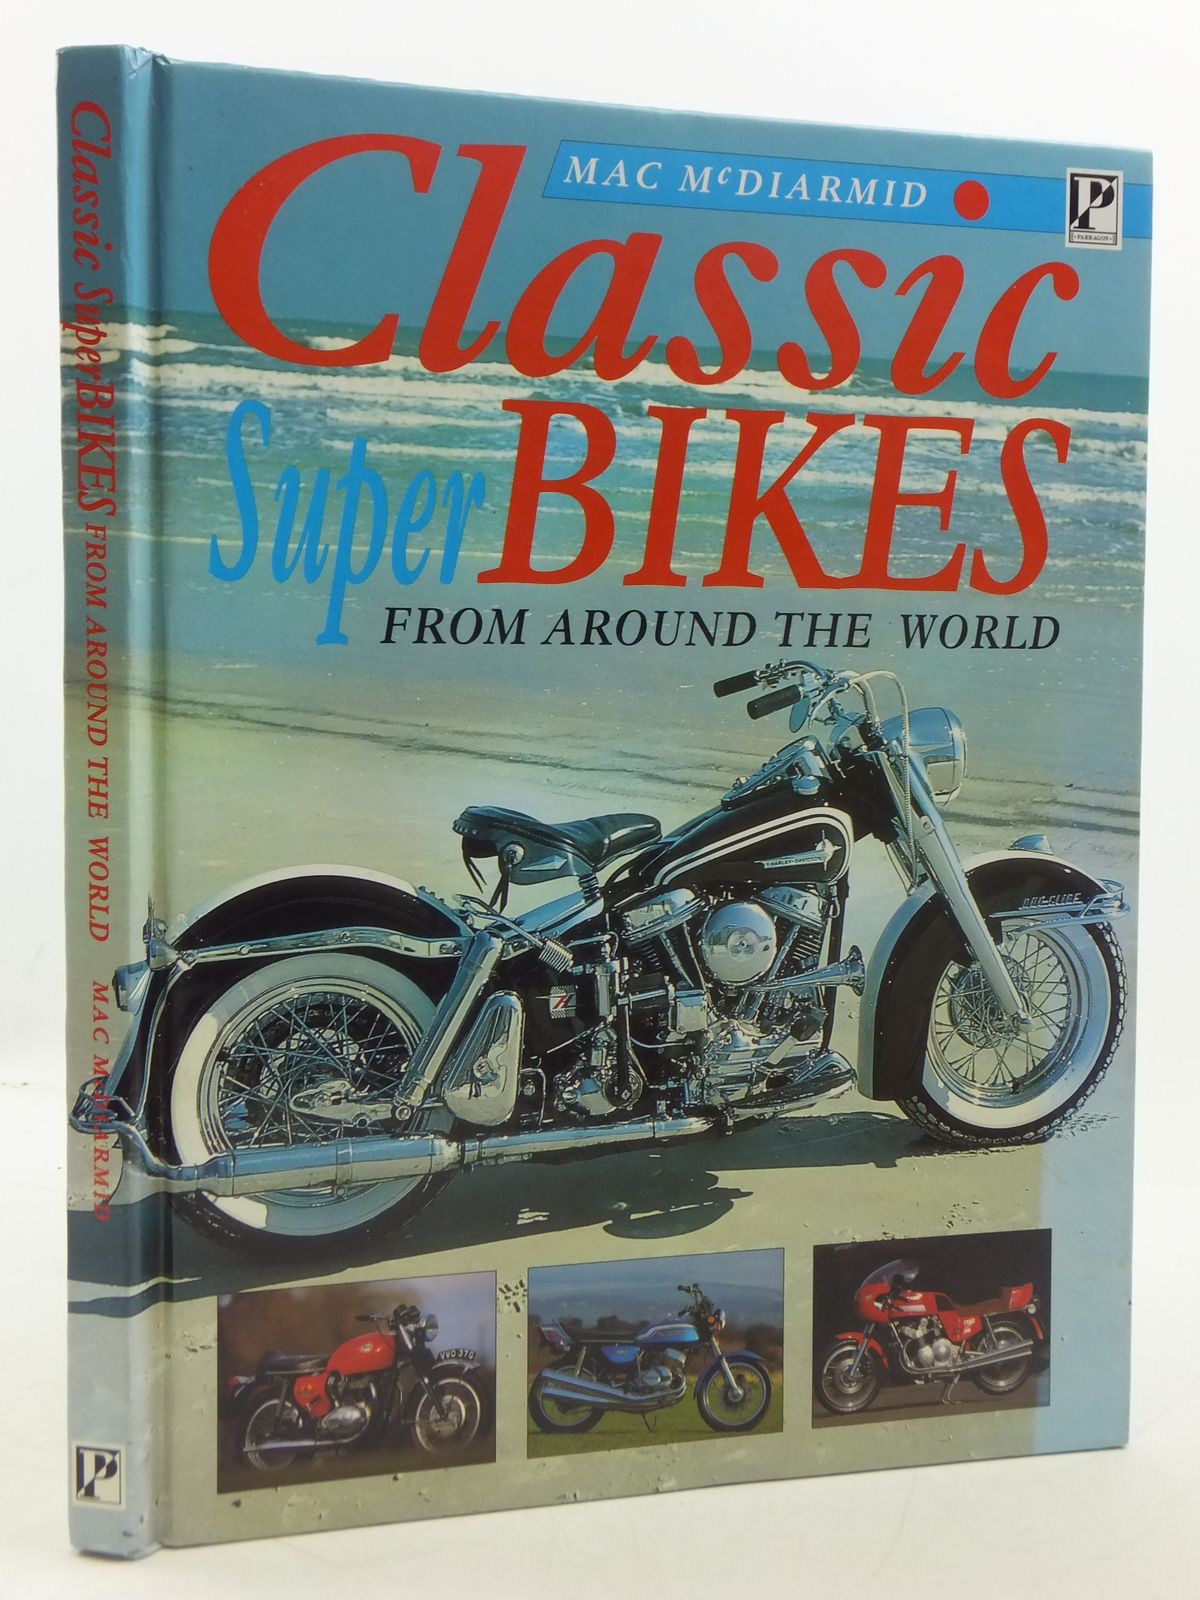 Photo of CLASSIC SUPER BIKES FROM AROUND THE WORLD written by McDiarmid, Mac published by Parragon Books (STOCK CODE: 1605279)  for sale by Stella & Rose's Books